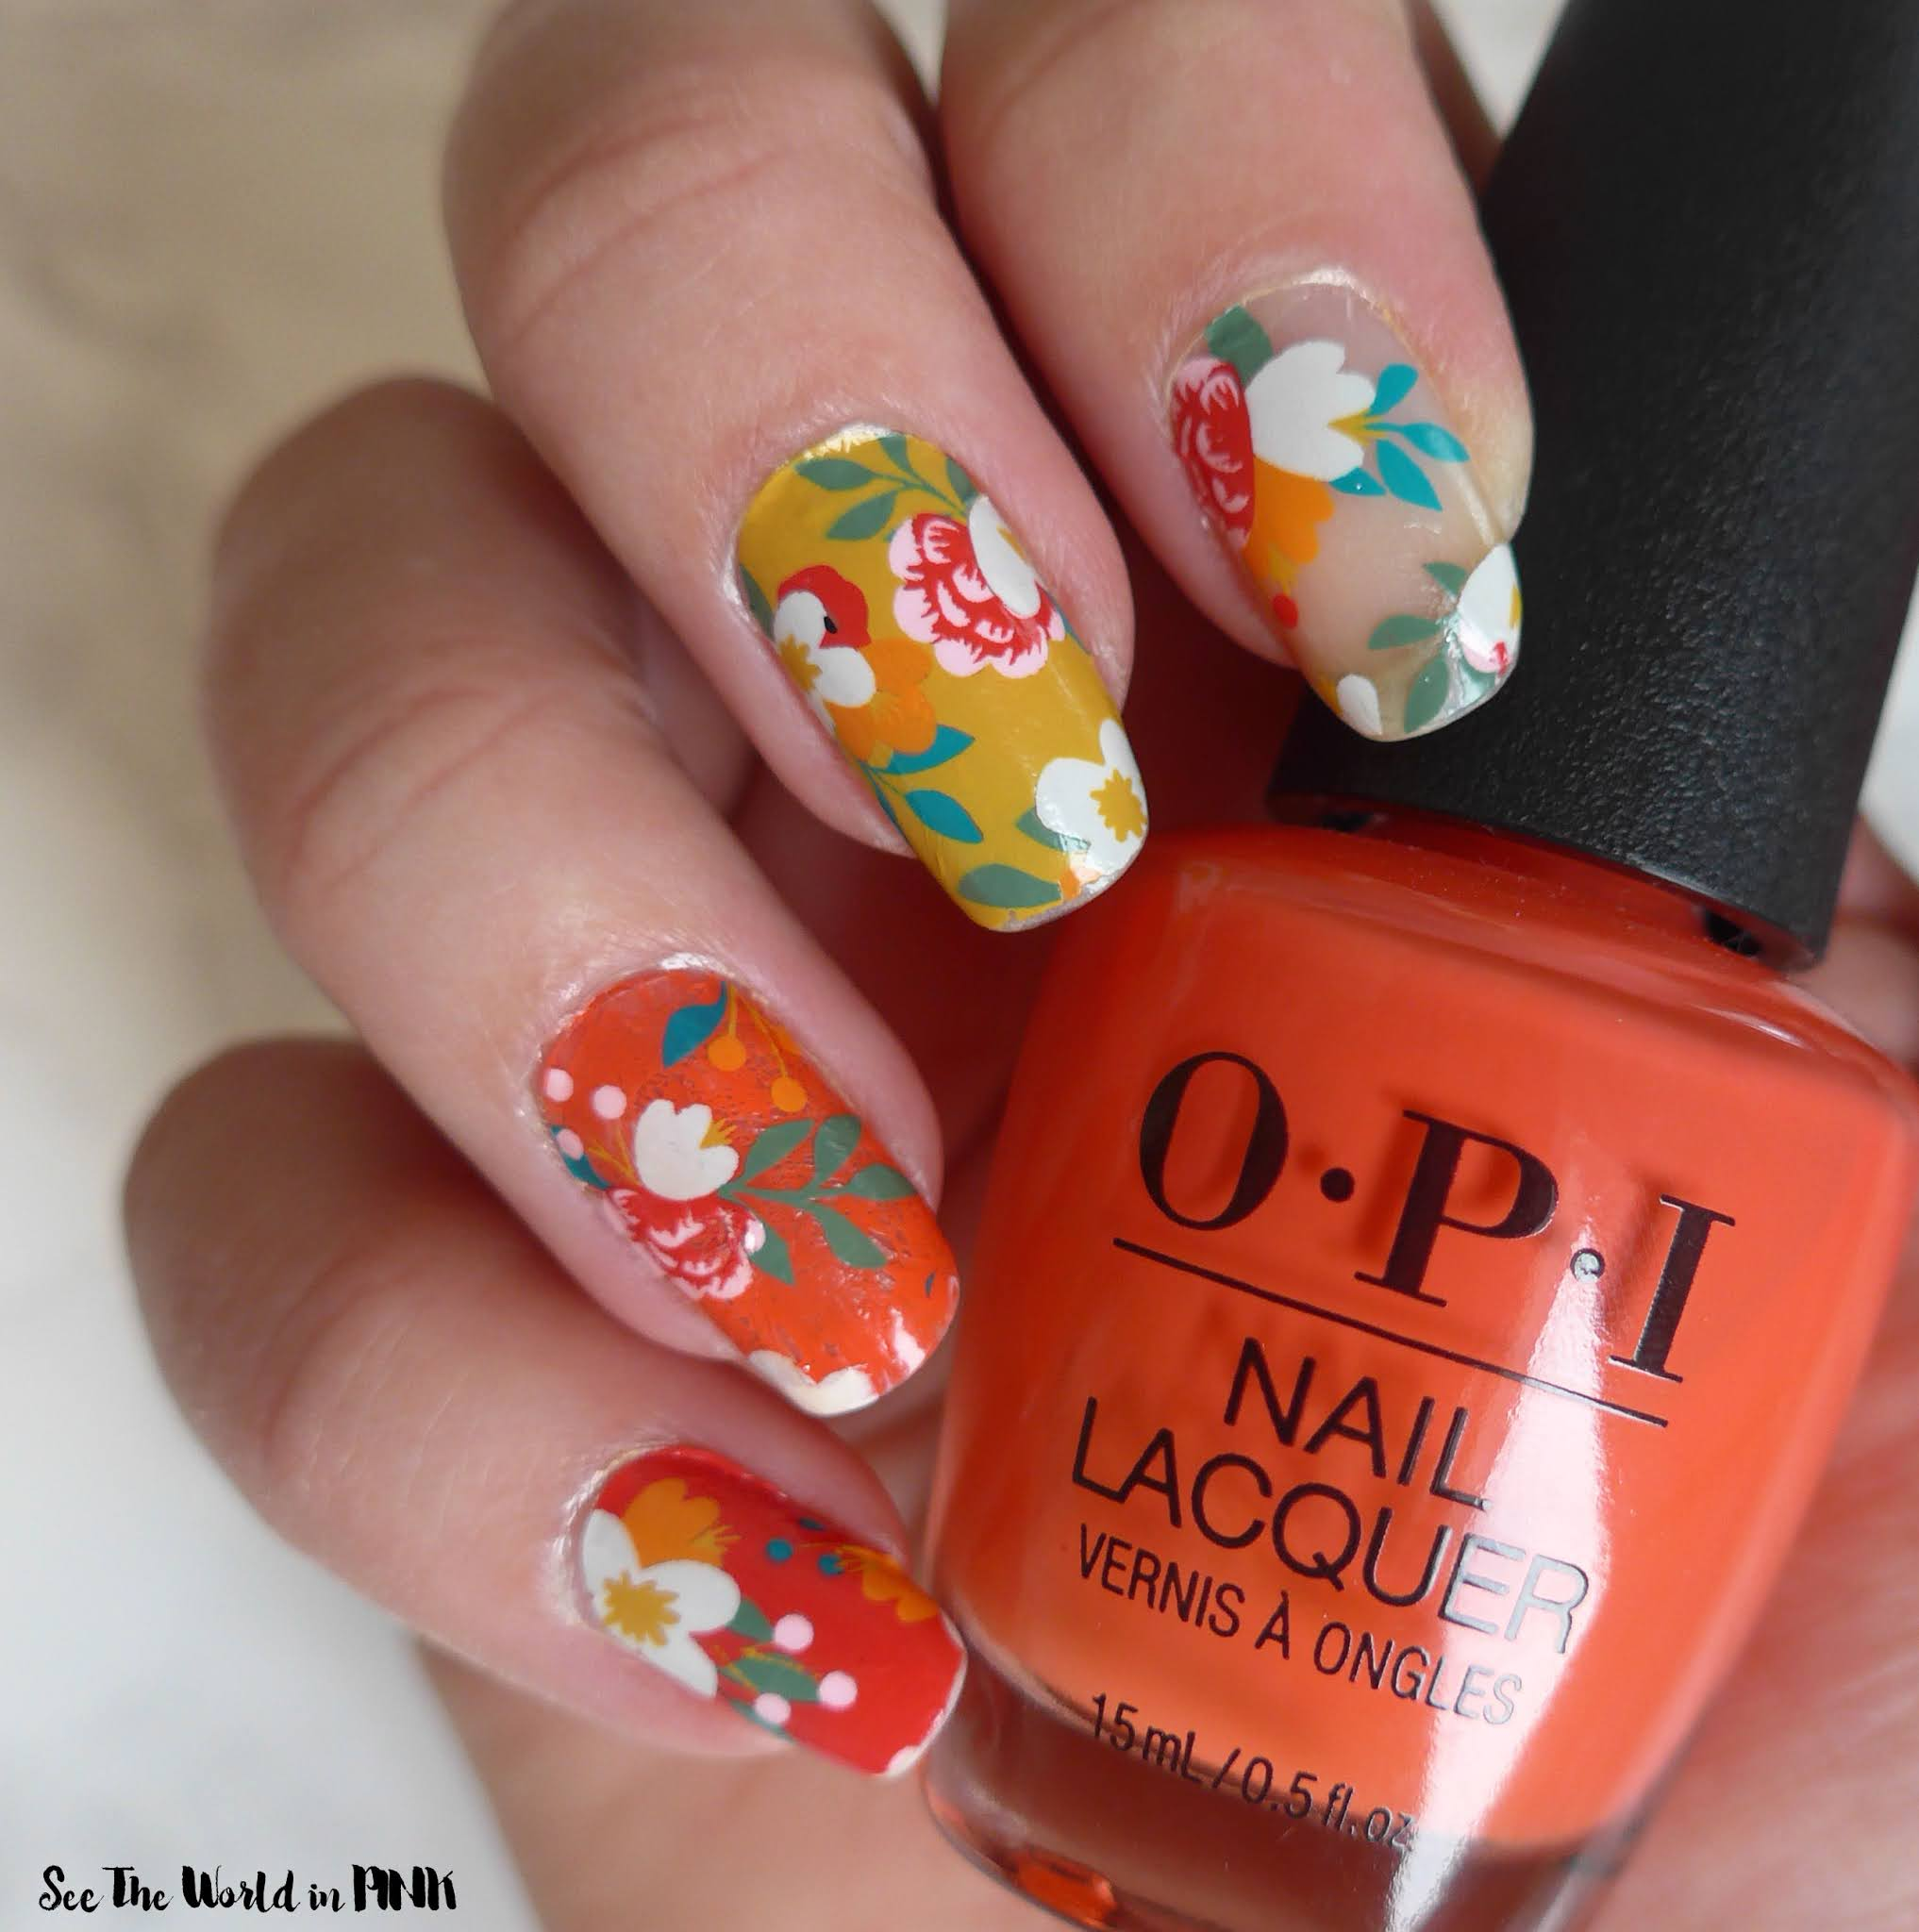 Manicure Monday - Fall Floral Nails